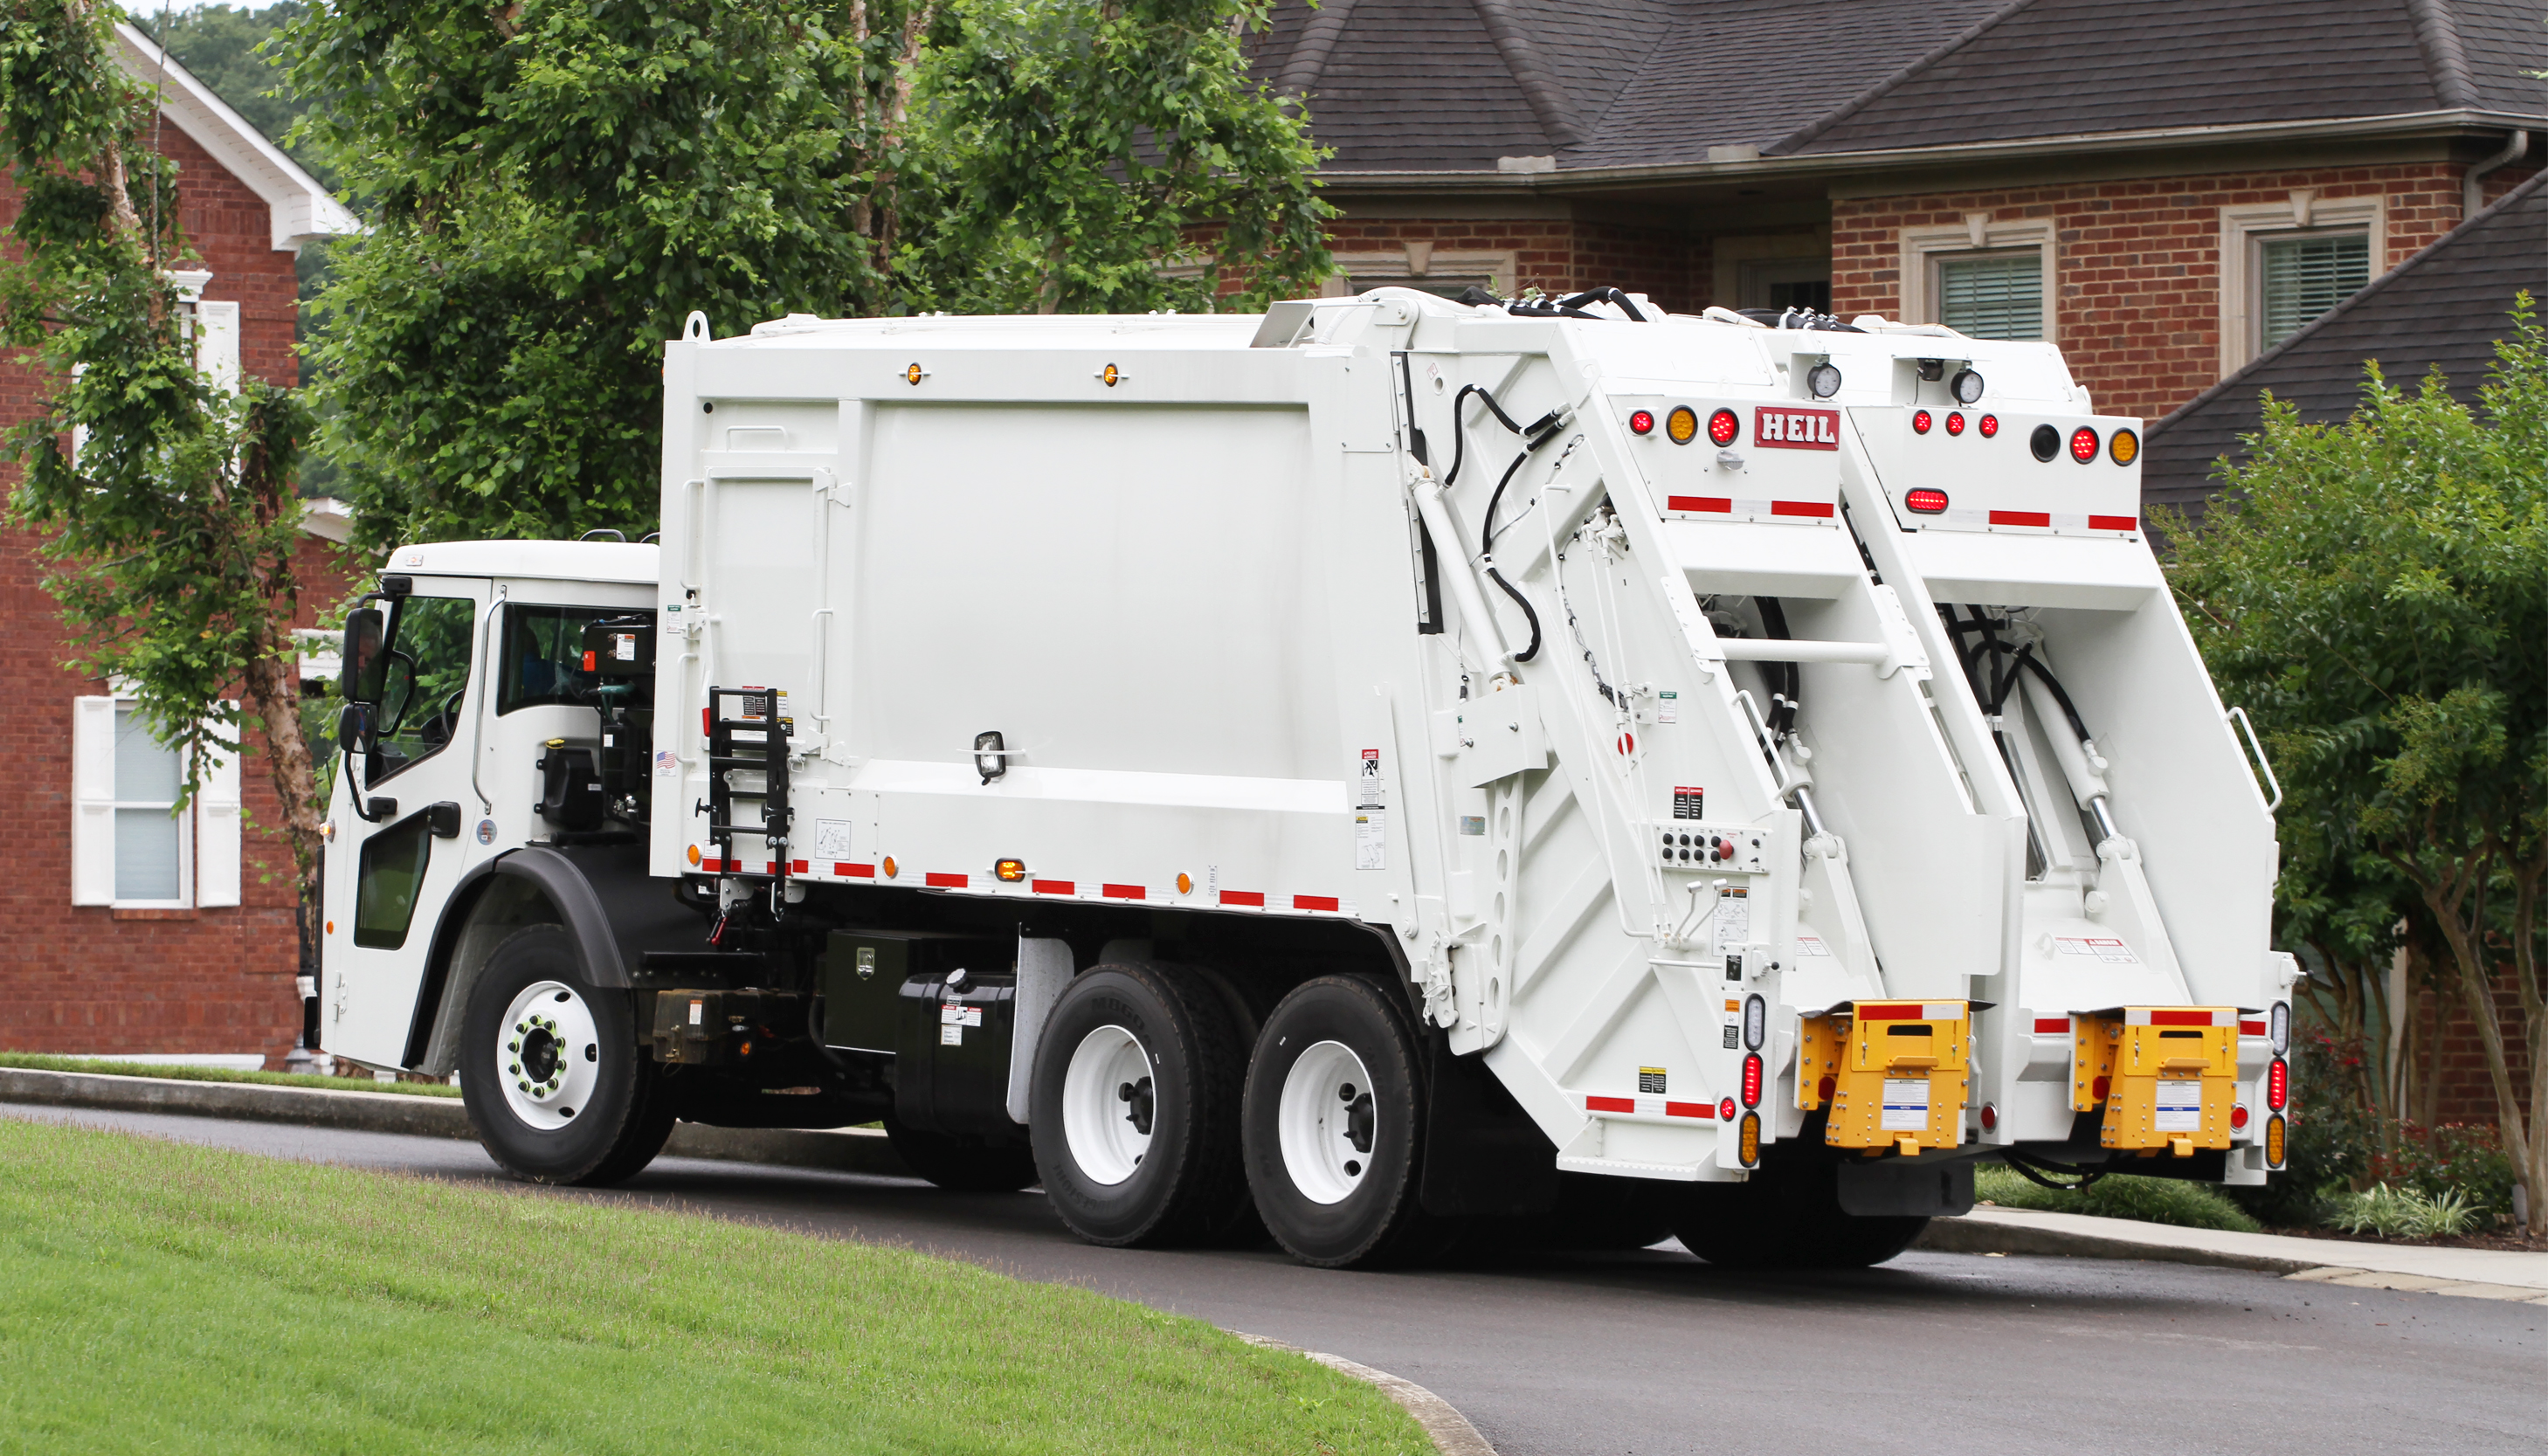 DP4060_split-body-rear-load-garbage-truck.jpg